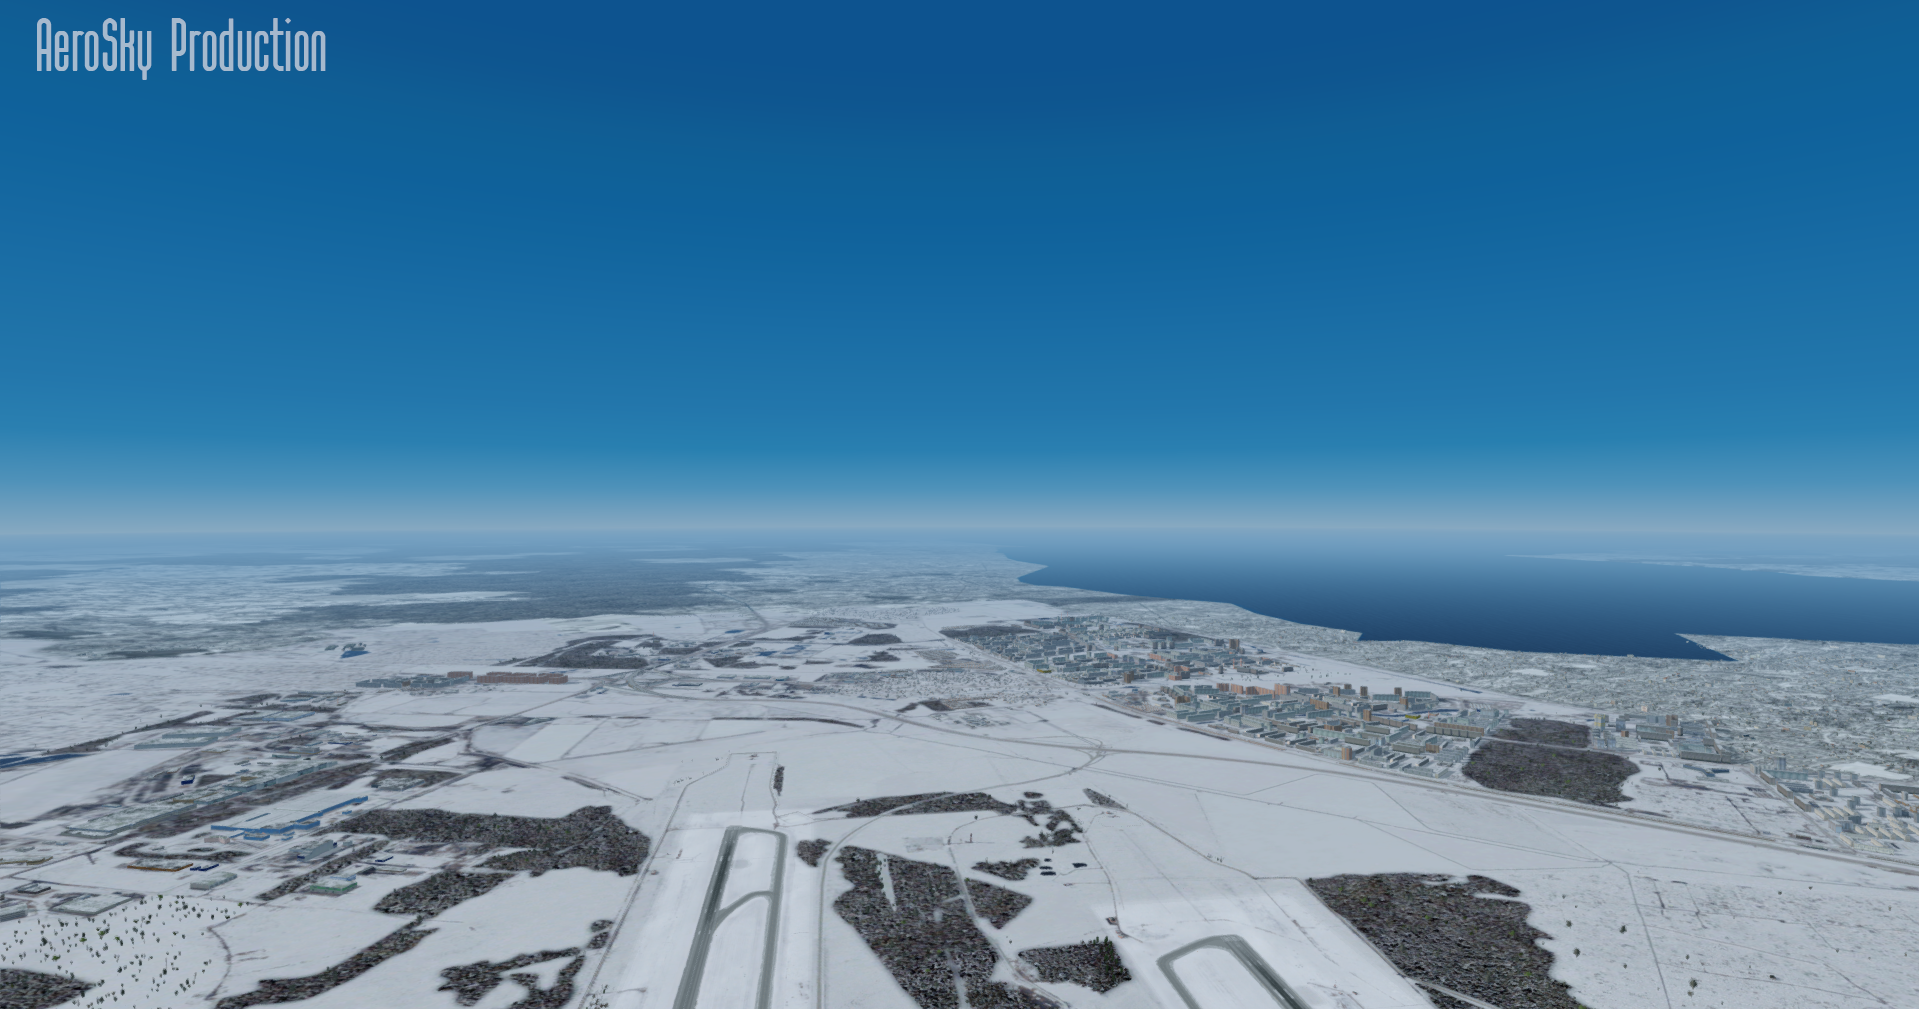 AEROSKY PRODUCTION - WINTER STORY P3D4